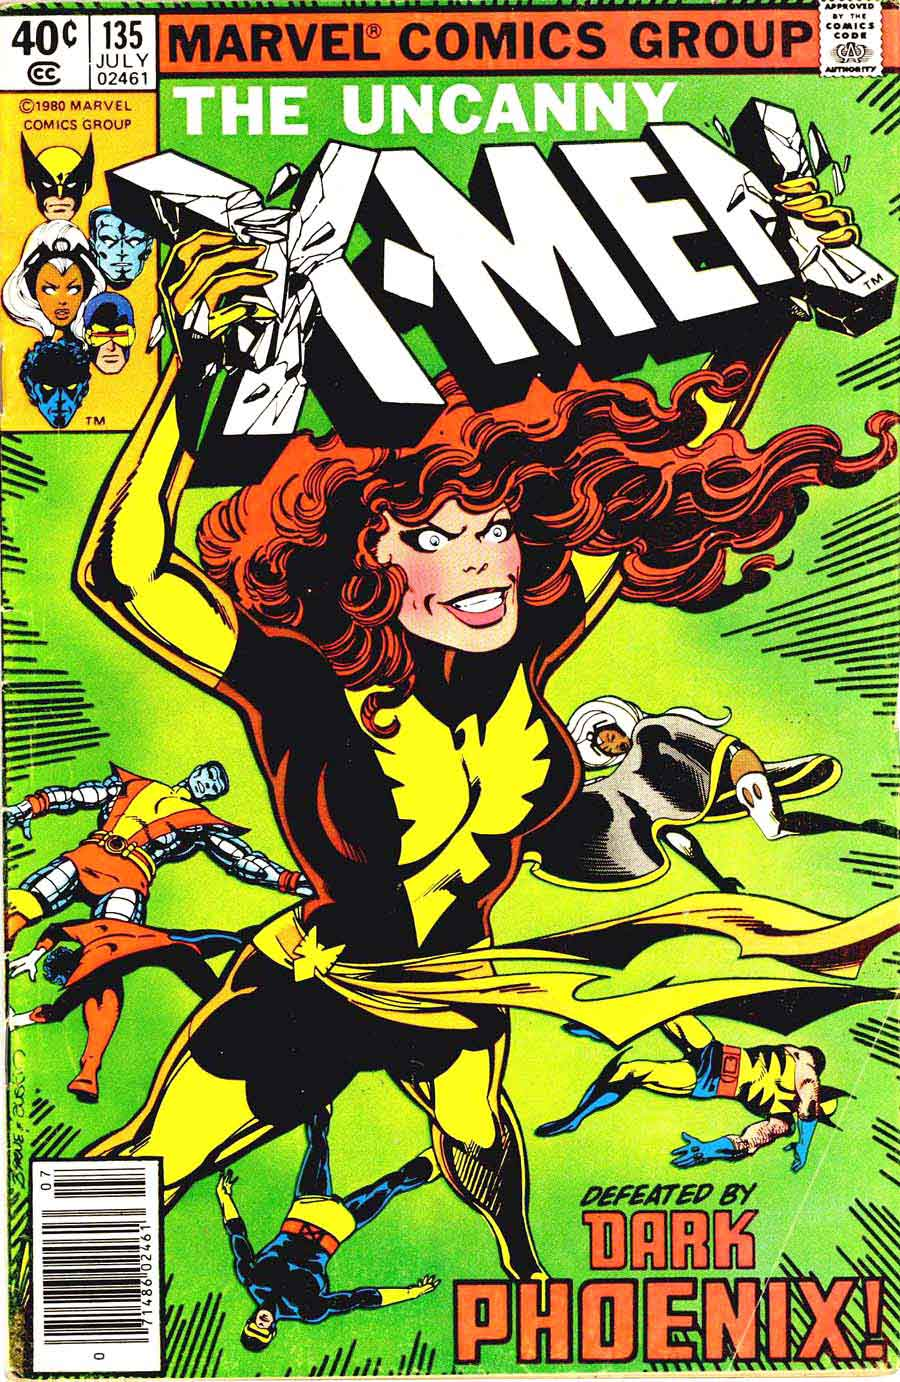 X-men v1 #135 marvel comic book cover art by John Byrne